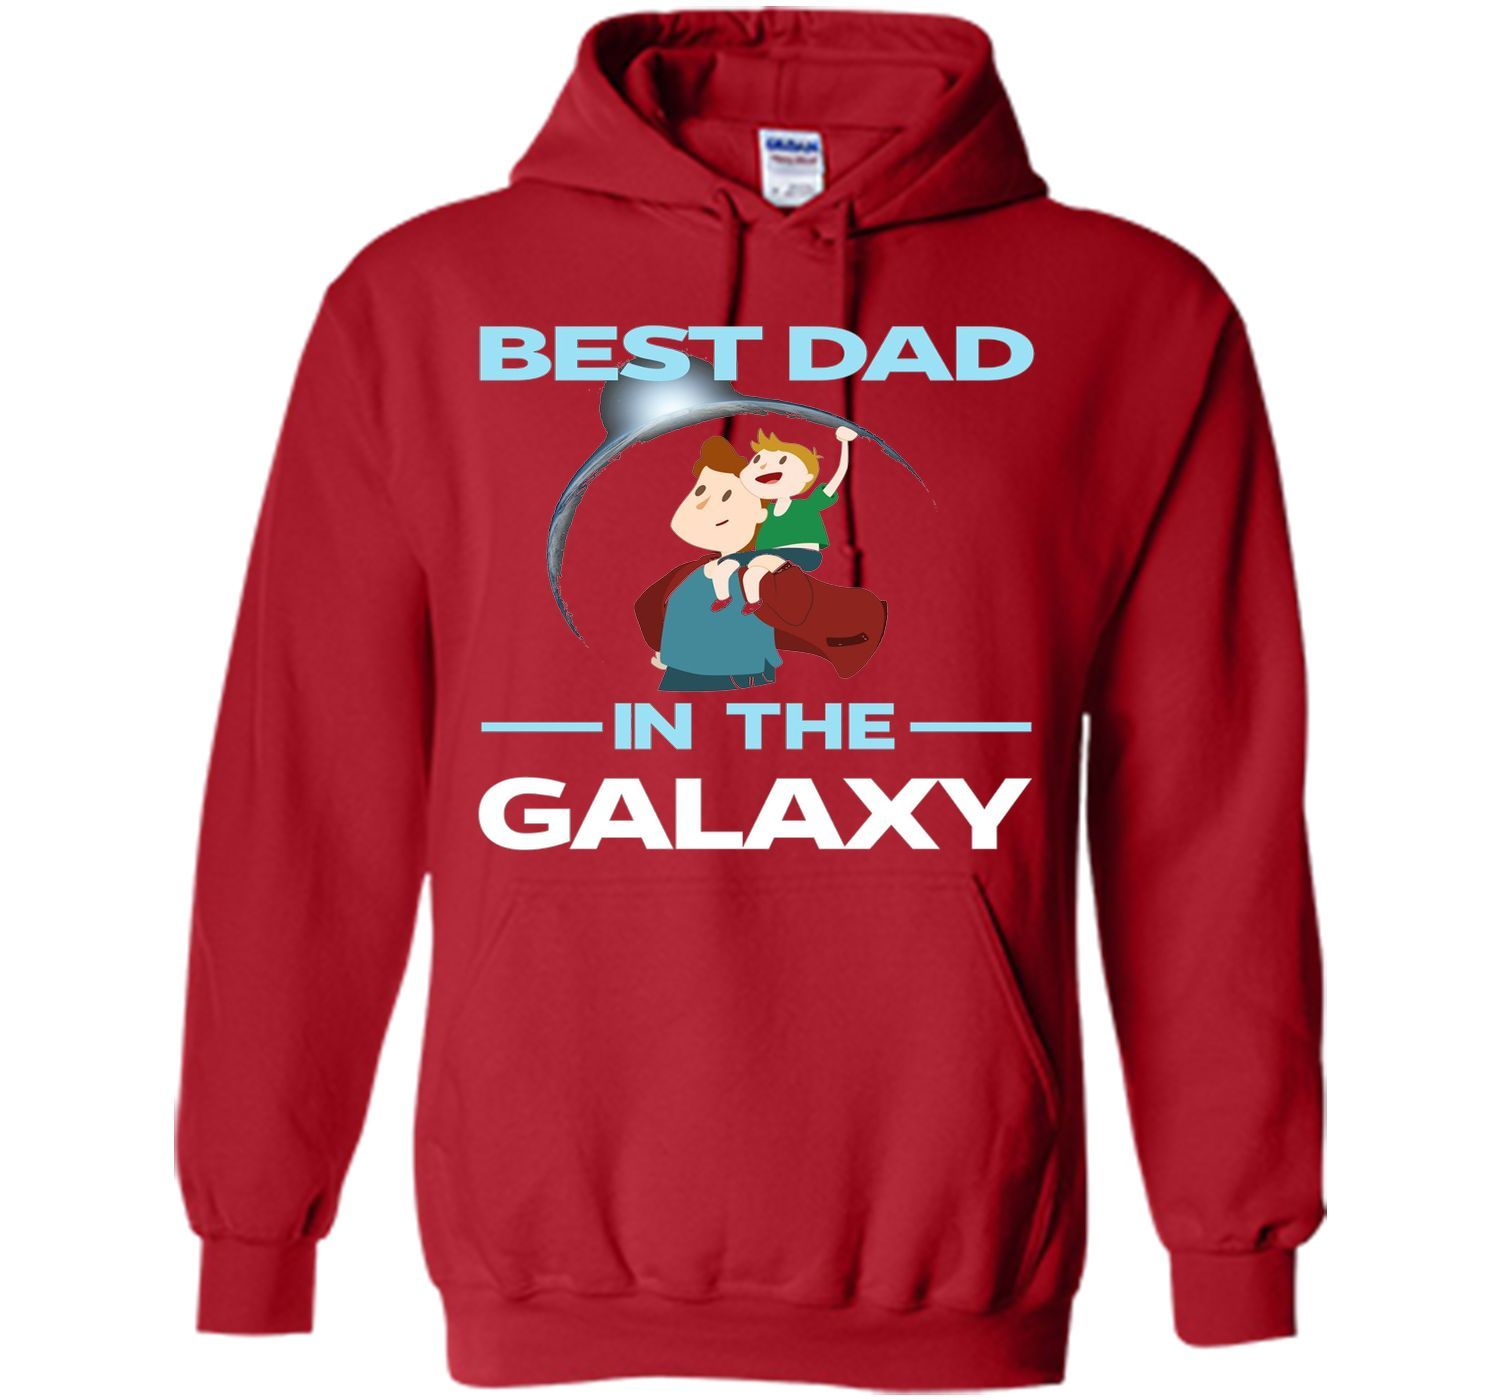 Tattoos for men with kids father day gift kids u men  best dad in the galaxy tshirt